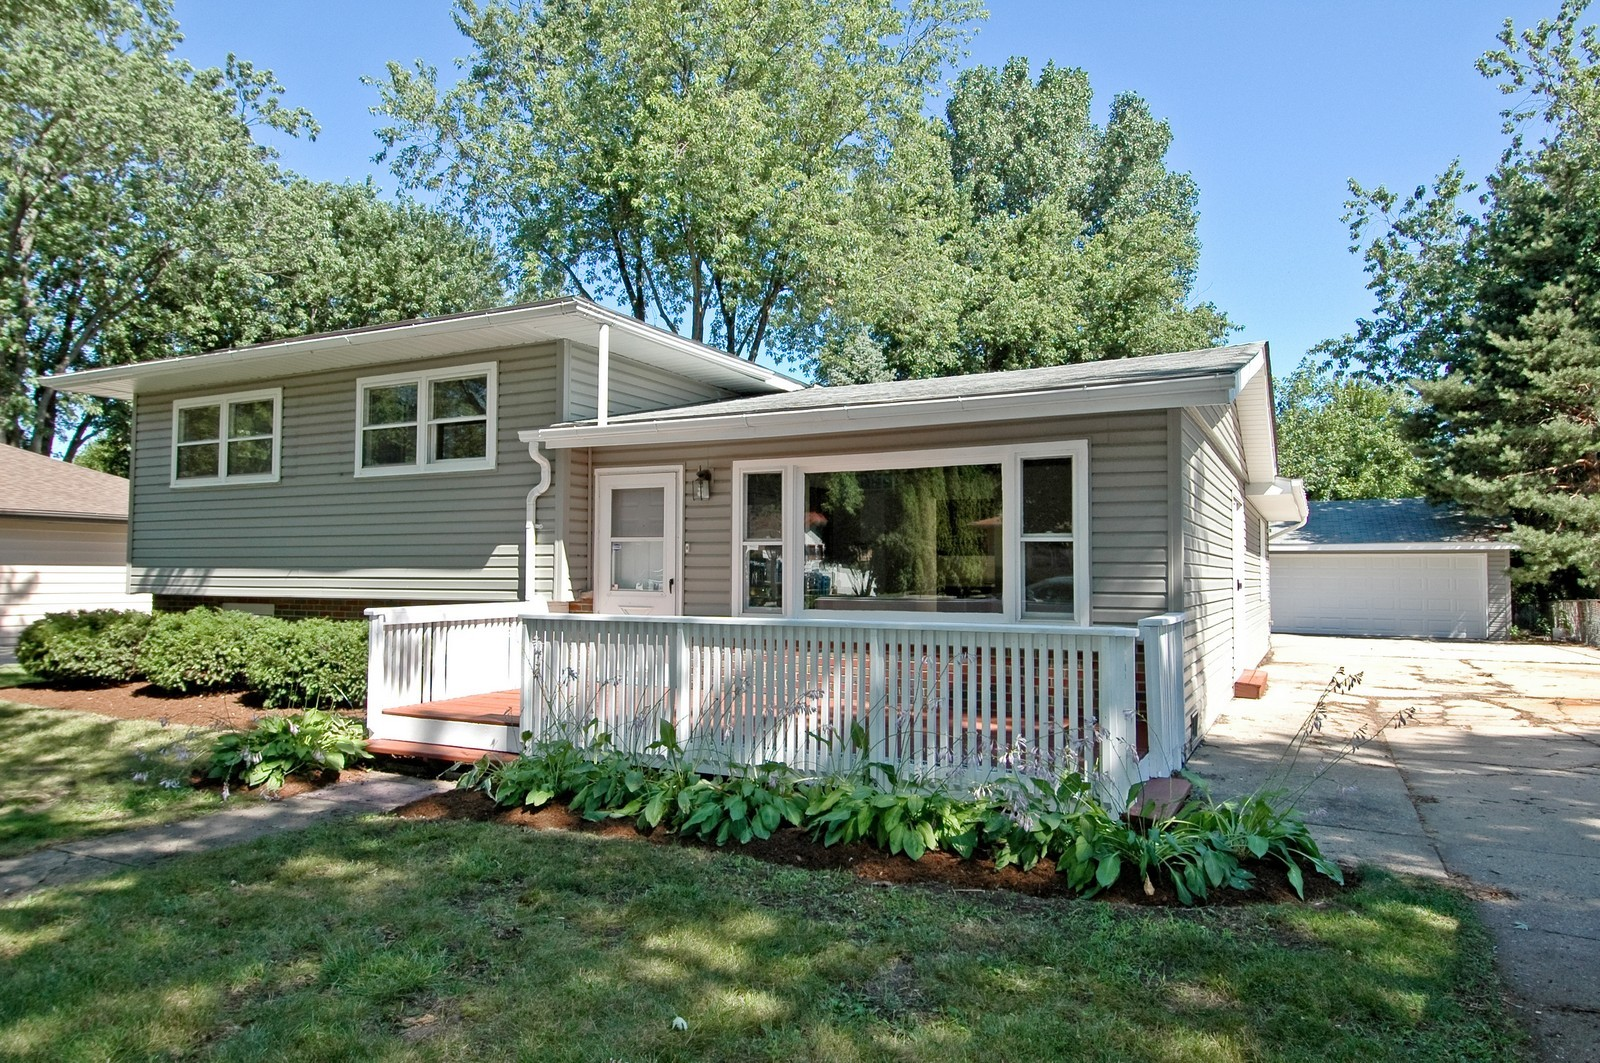 Real Estate Photography - 35W714 Crispin Dr, Elgin, IL, 60123 - Front View